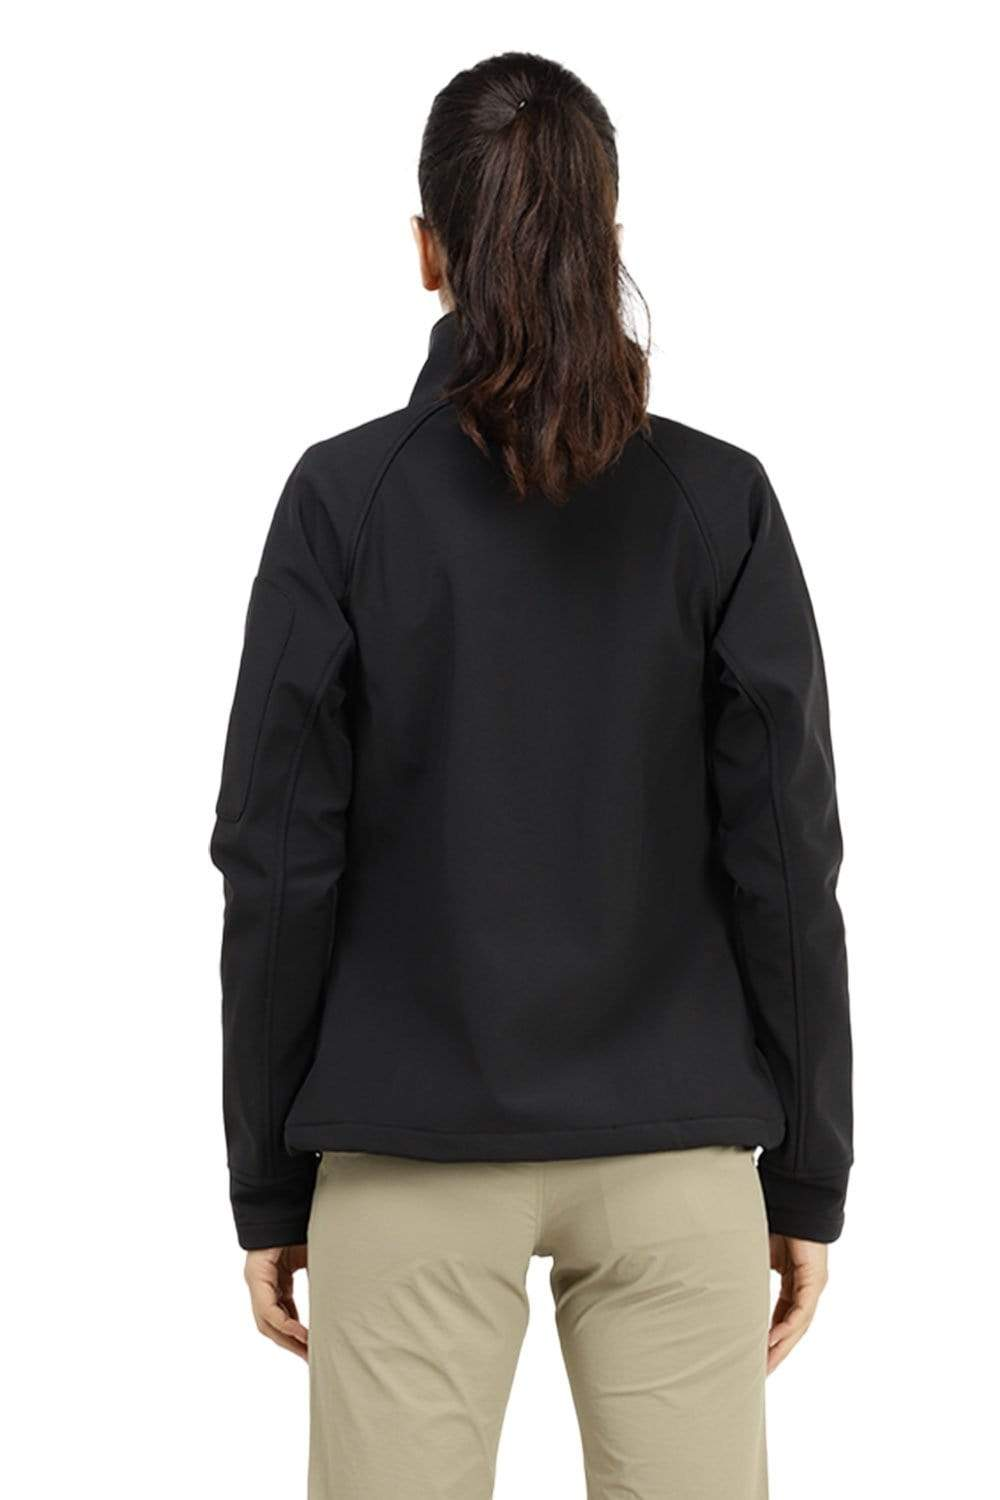 Women's Outdoor Softshell Full Zip Jacket Softshell jacket MIER